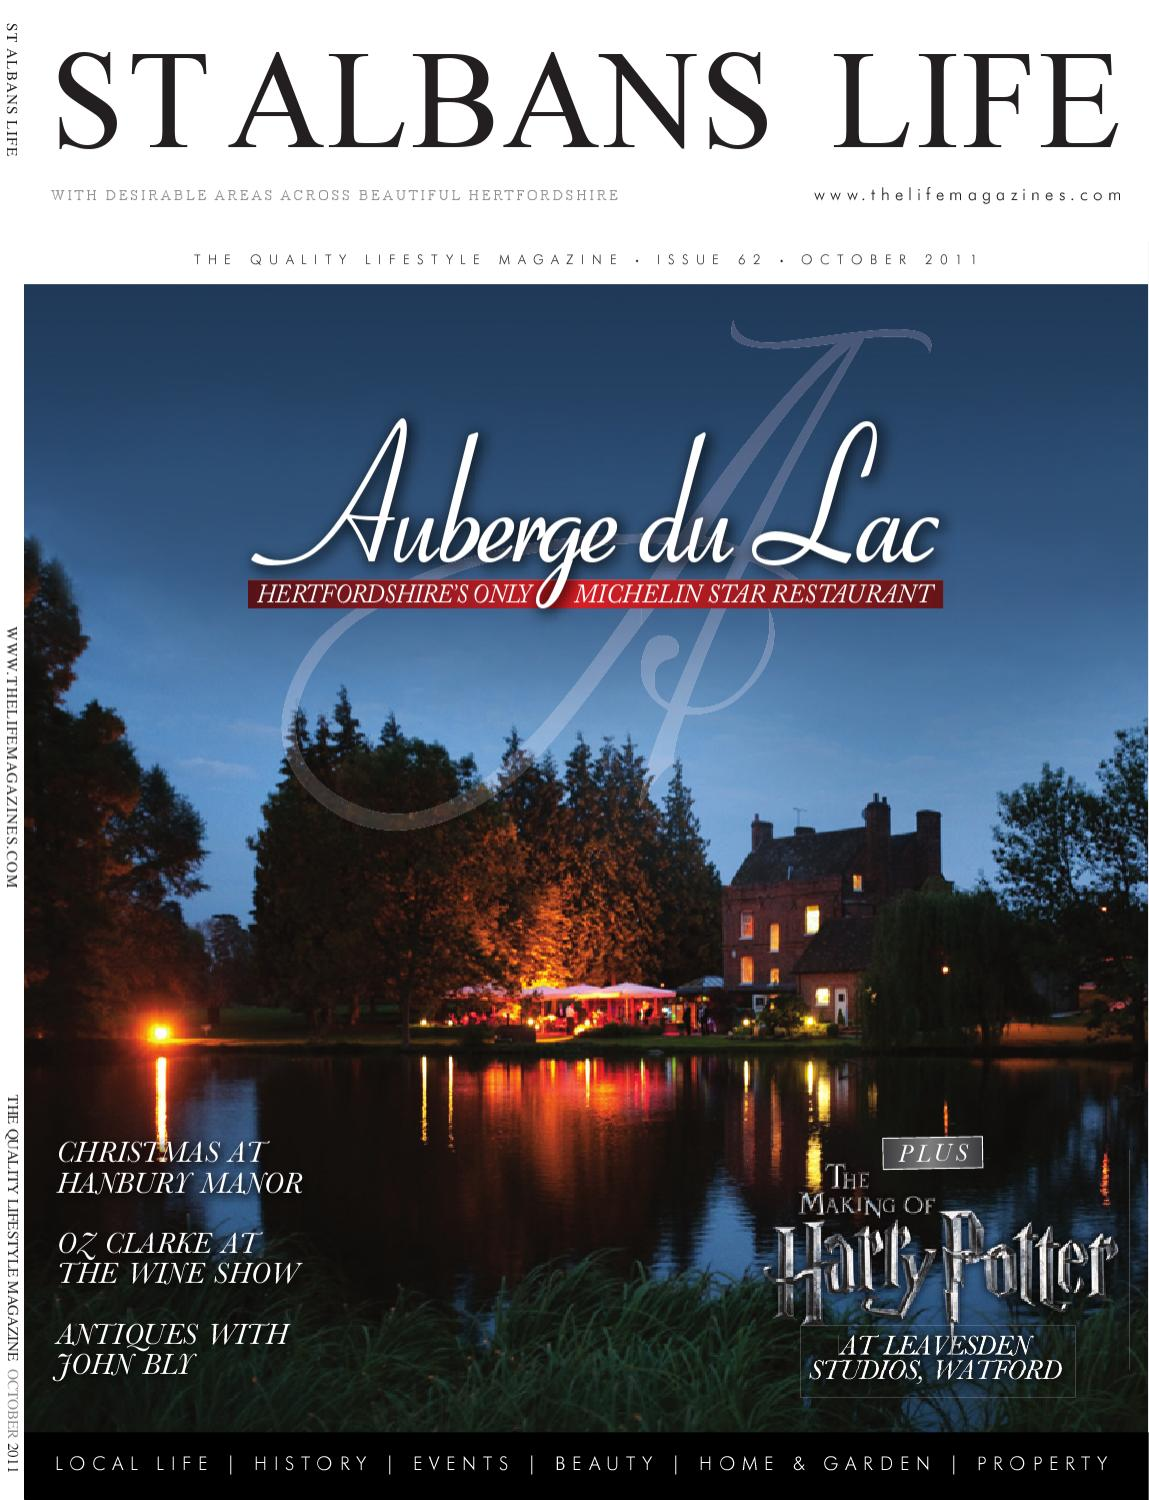 St Albans Life Magazine October 2011 by FishMedia - issuu